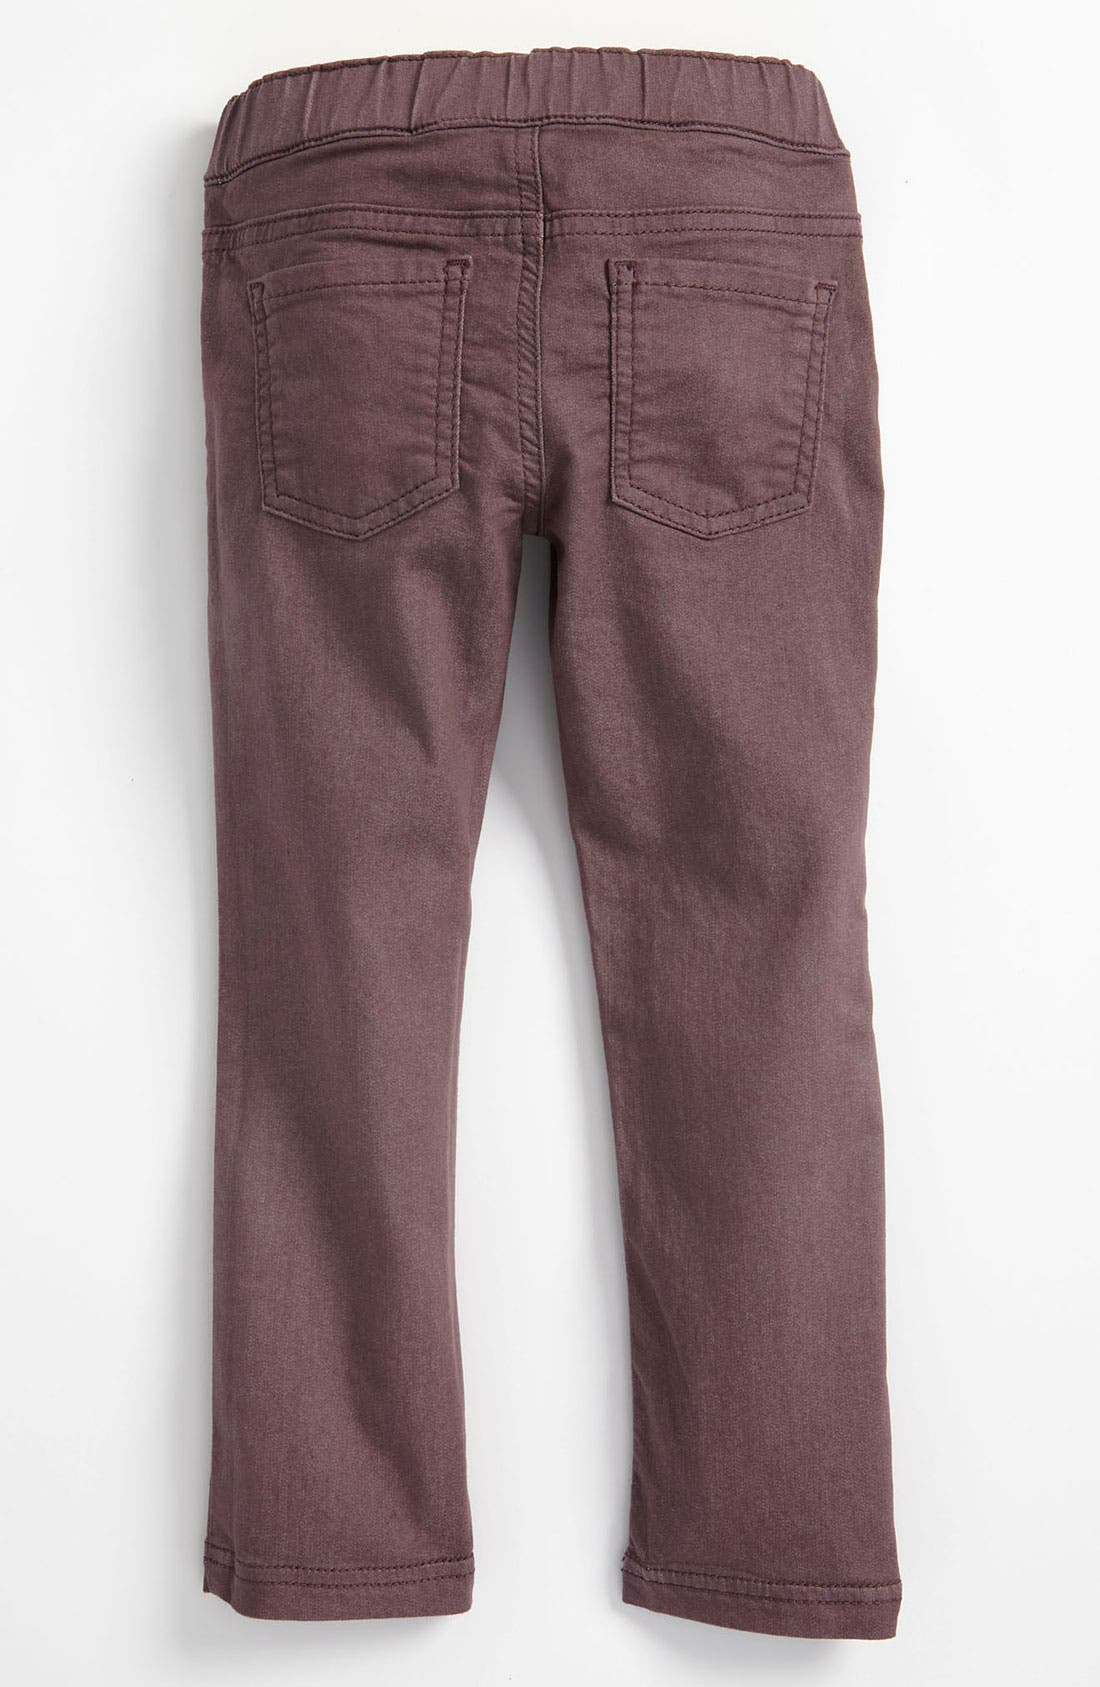 Main Image - United Colors of Benetton Kids Jeggings (Toddler)